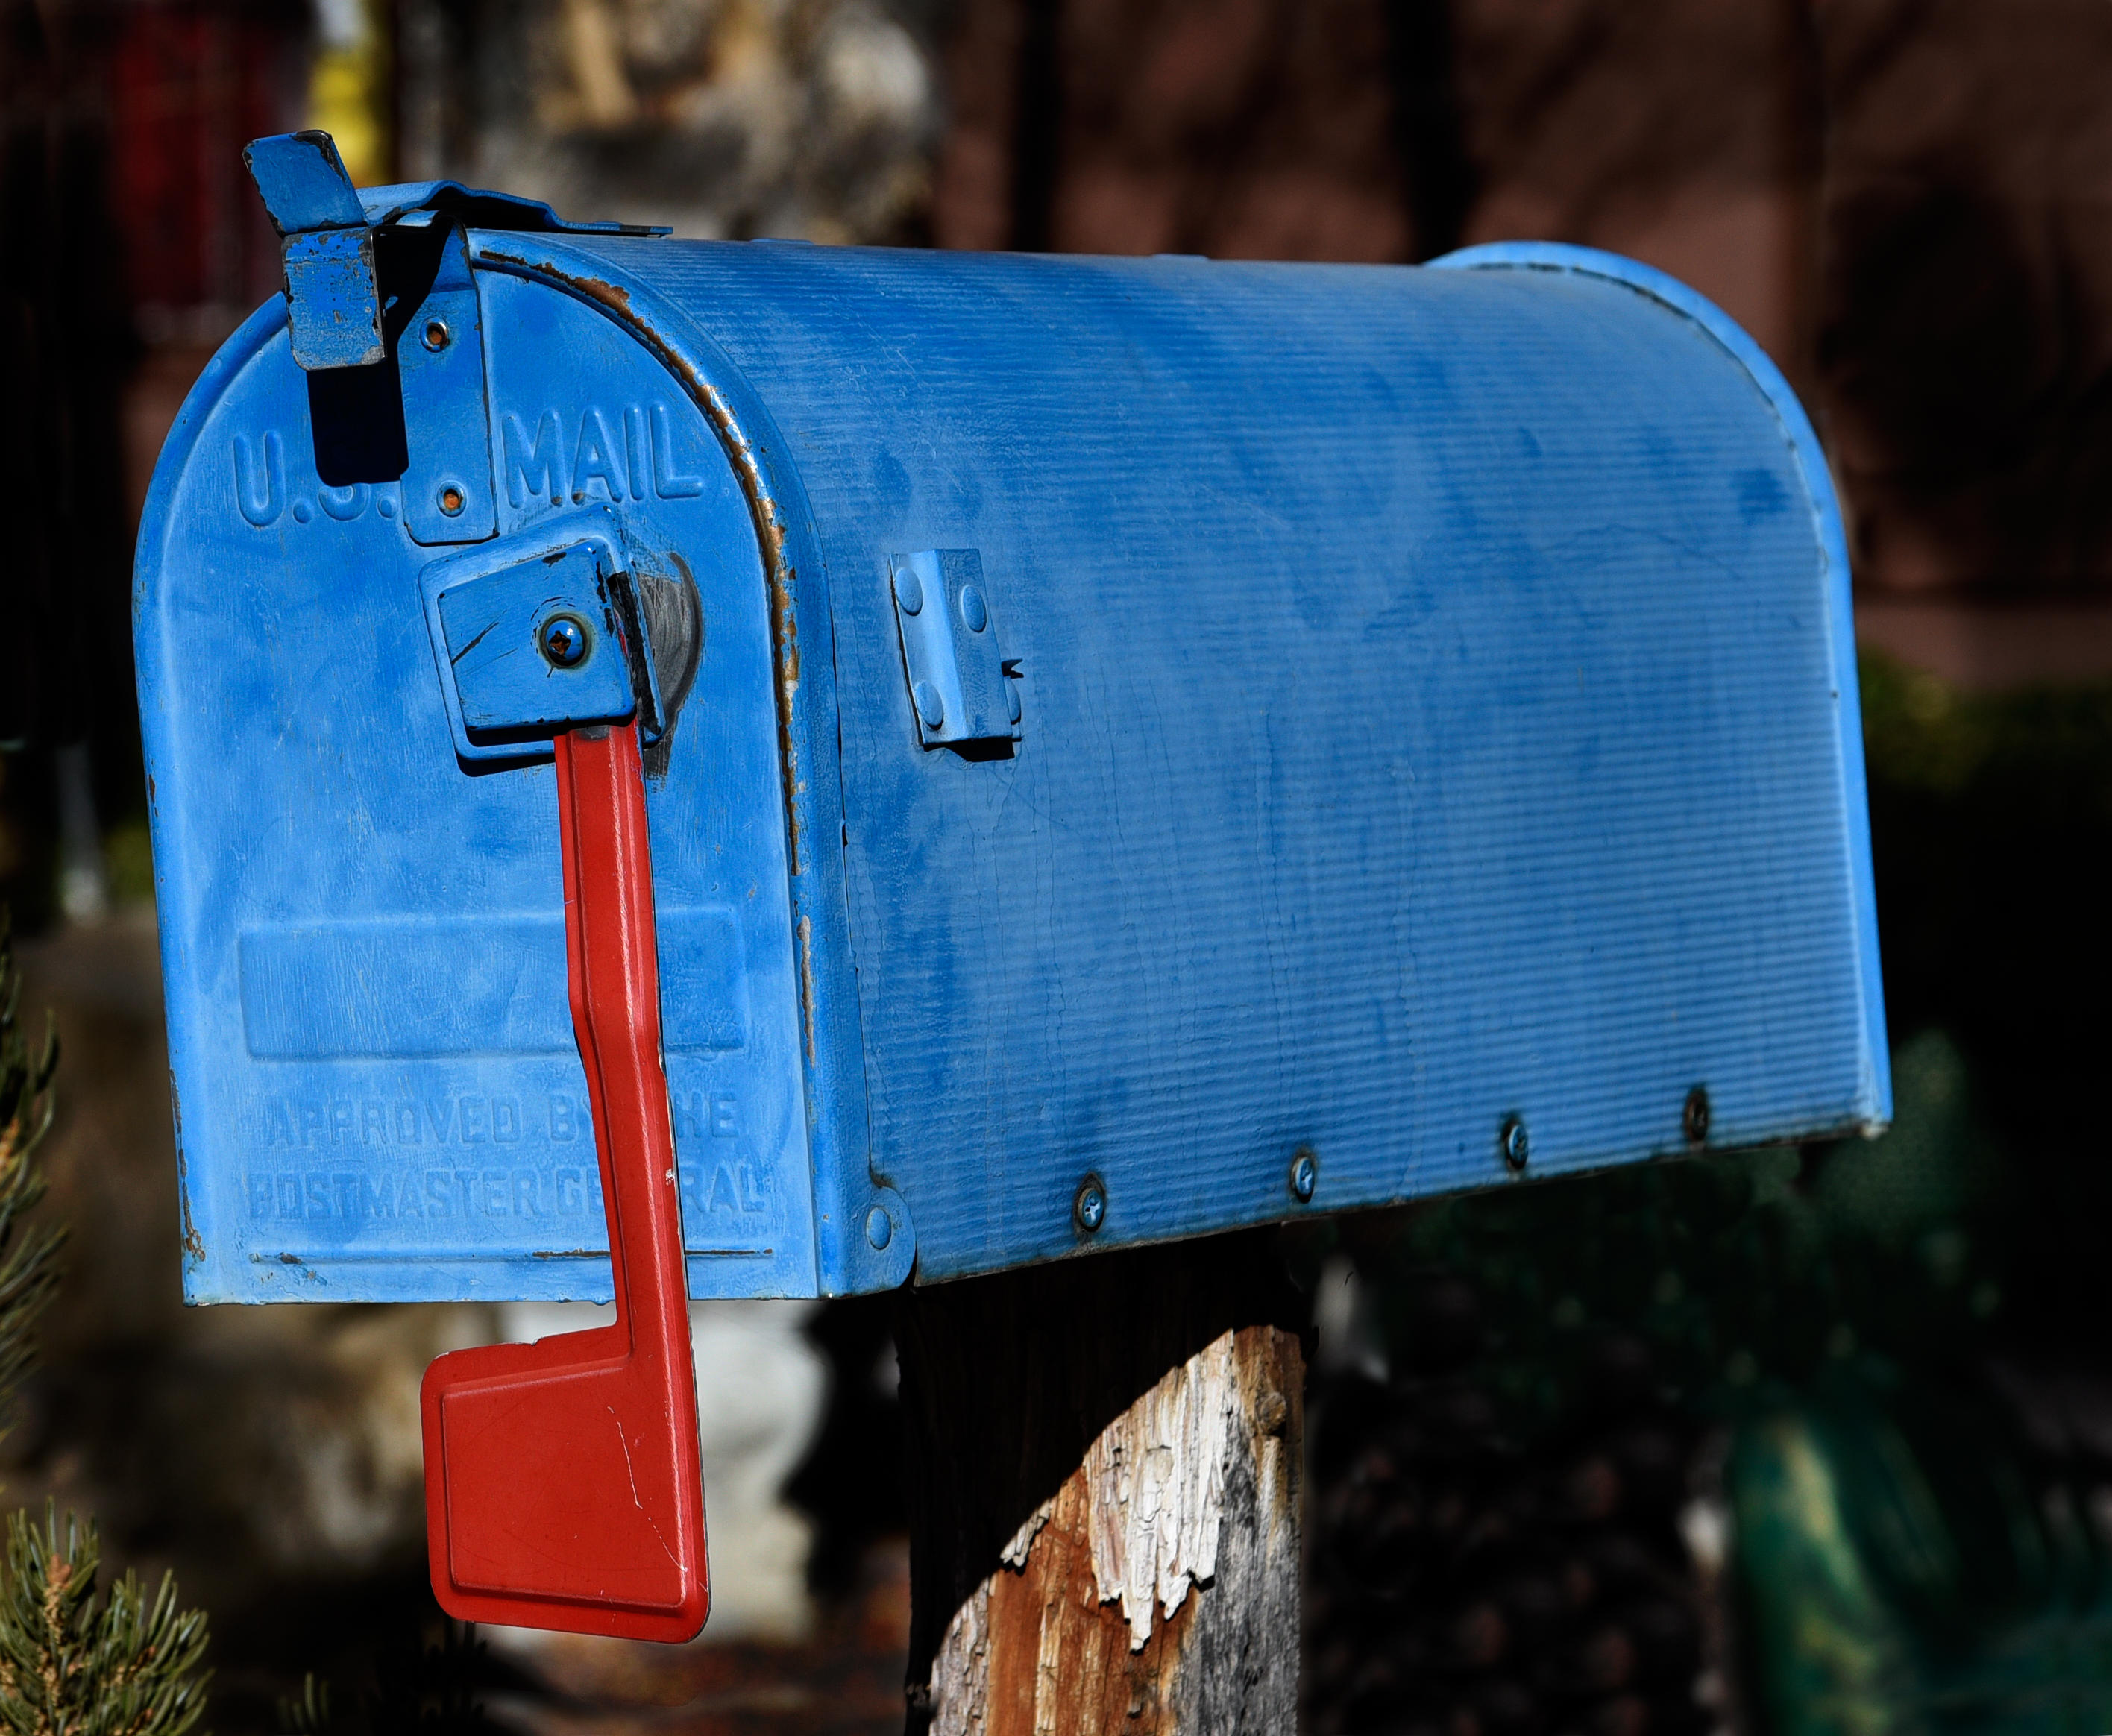 A blue mailbox with a red flag pointed down.